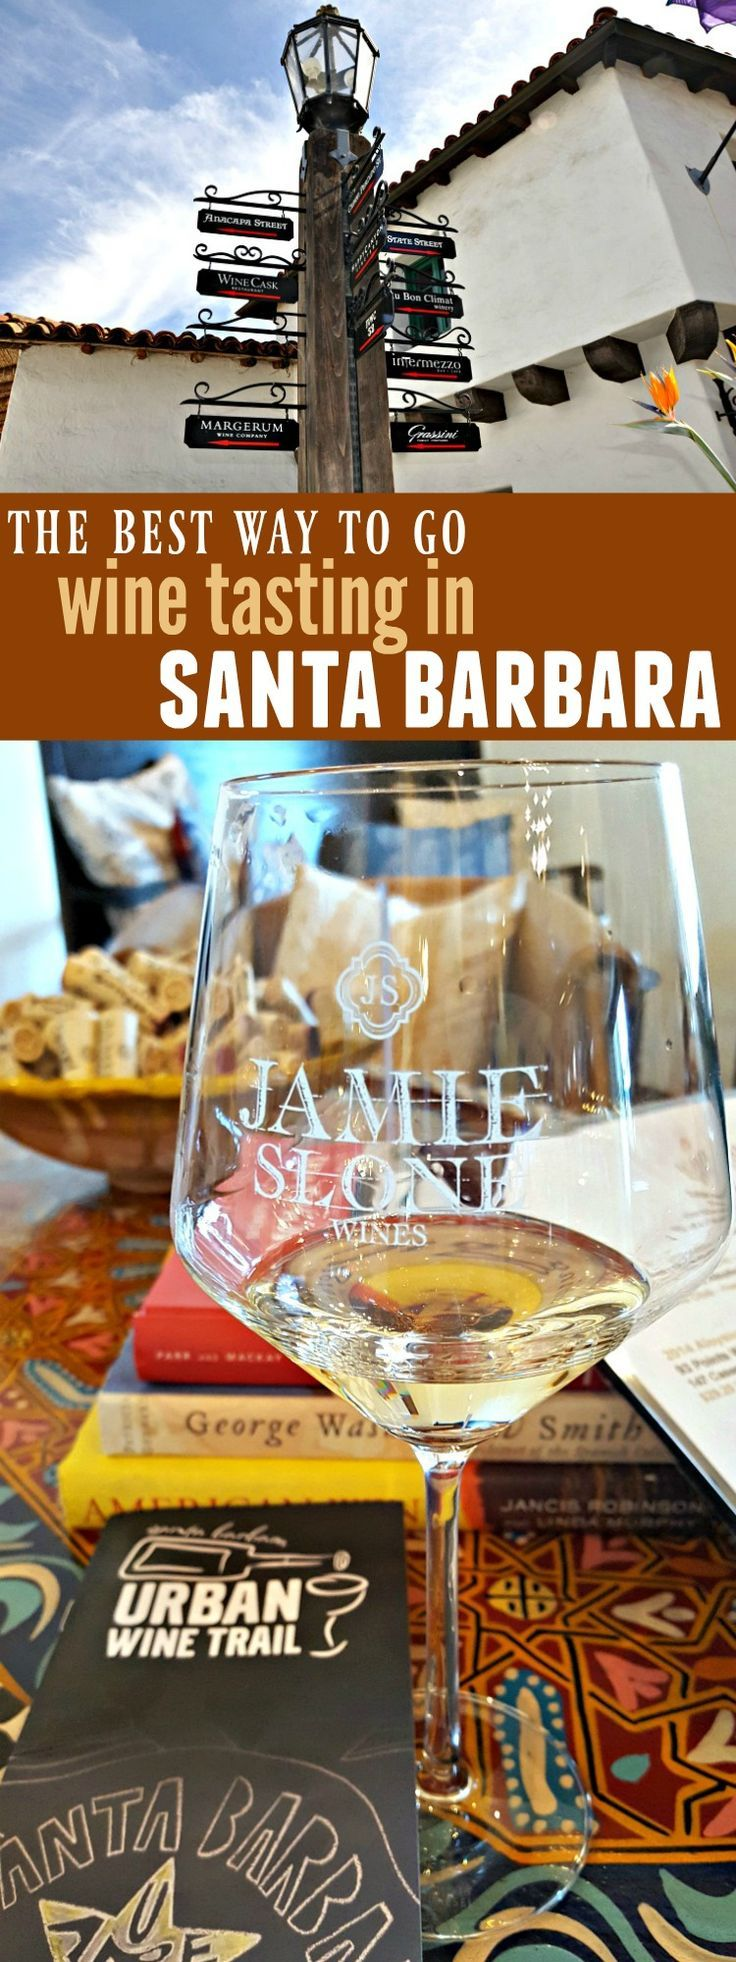 Are you looking for the best way to go wine tasting in Santa Barbara? Check out our experience on the Santa Barbara Urban Wine Trail!